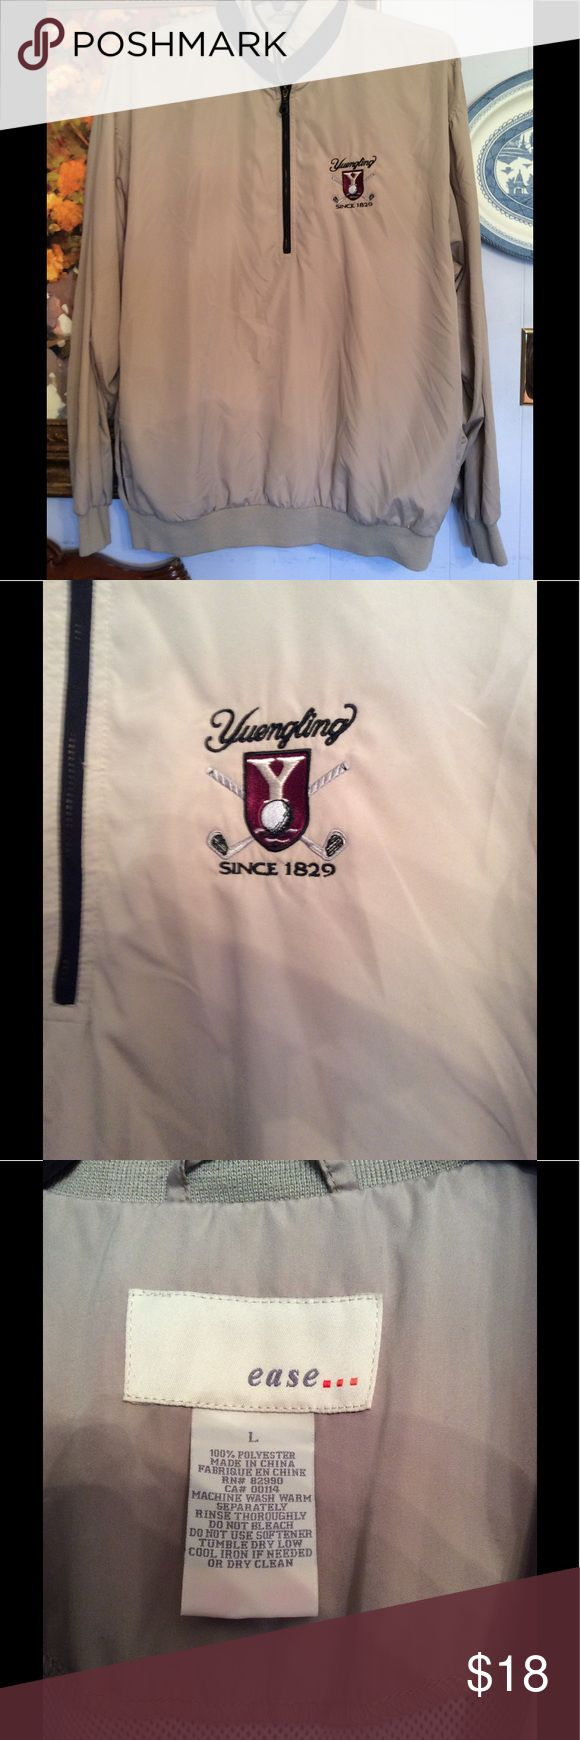 EASE... Yuengling Men's Golf Jacket Size L This is a nice men's pullover jacket. No ware or spots on it. It's 100% Polyester. Machine wash and tumble dry. ease... Jackets & Coats